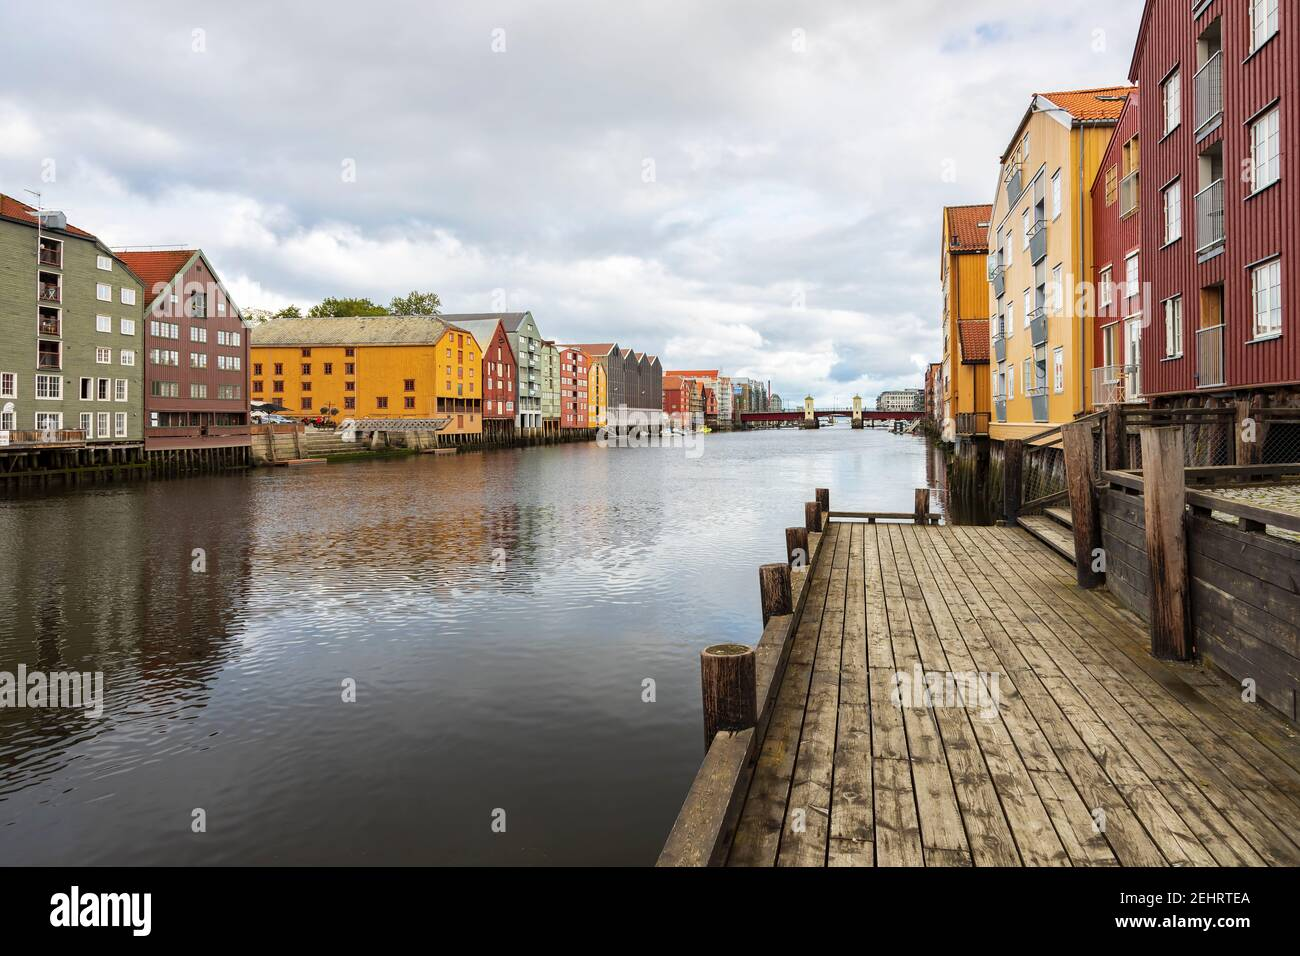 Colourful buildings along the river nidelva, in Trondheim, Norway. Stock Photo